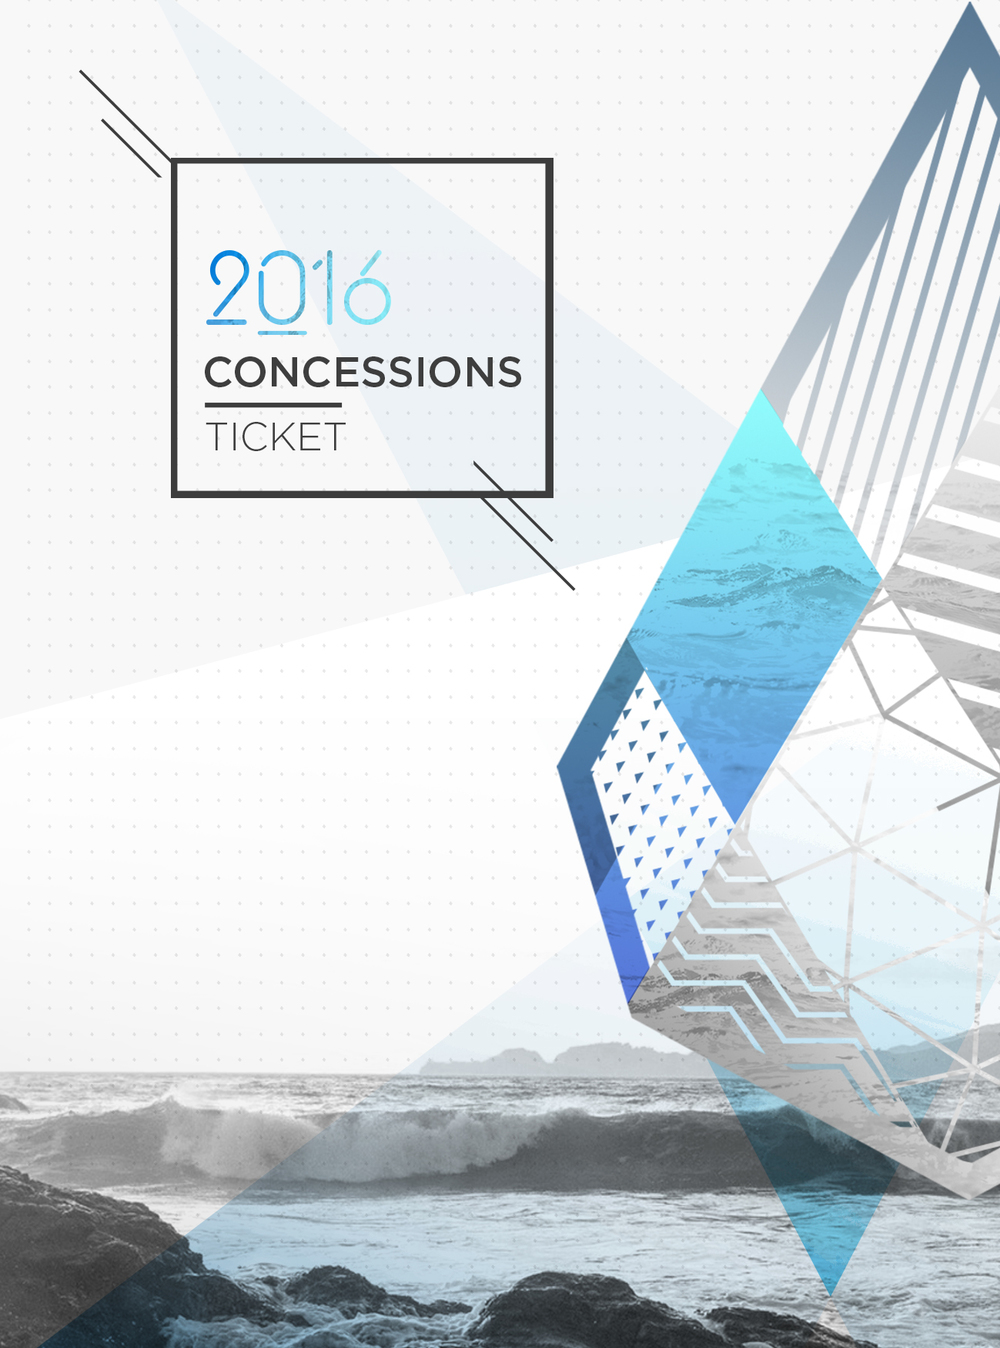 G12 UK Conference 2016 Concessions Ticket